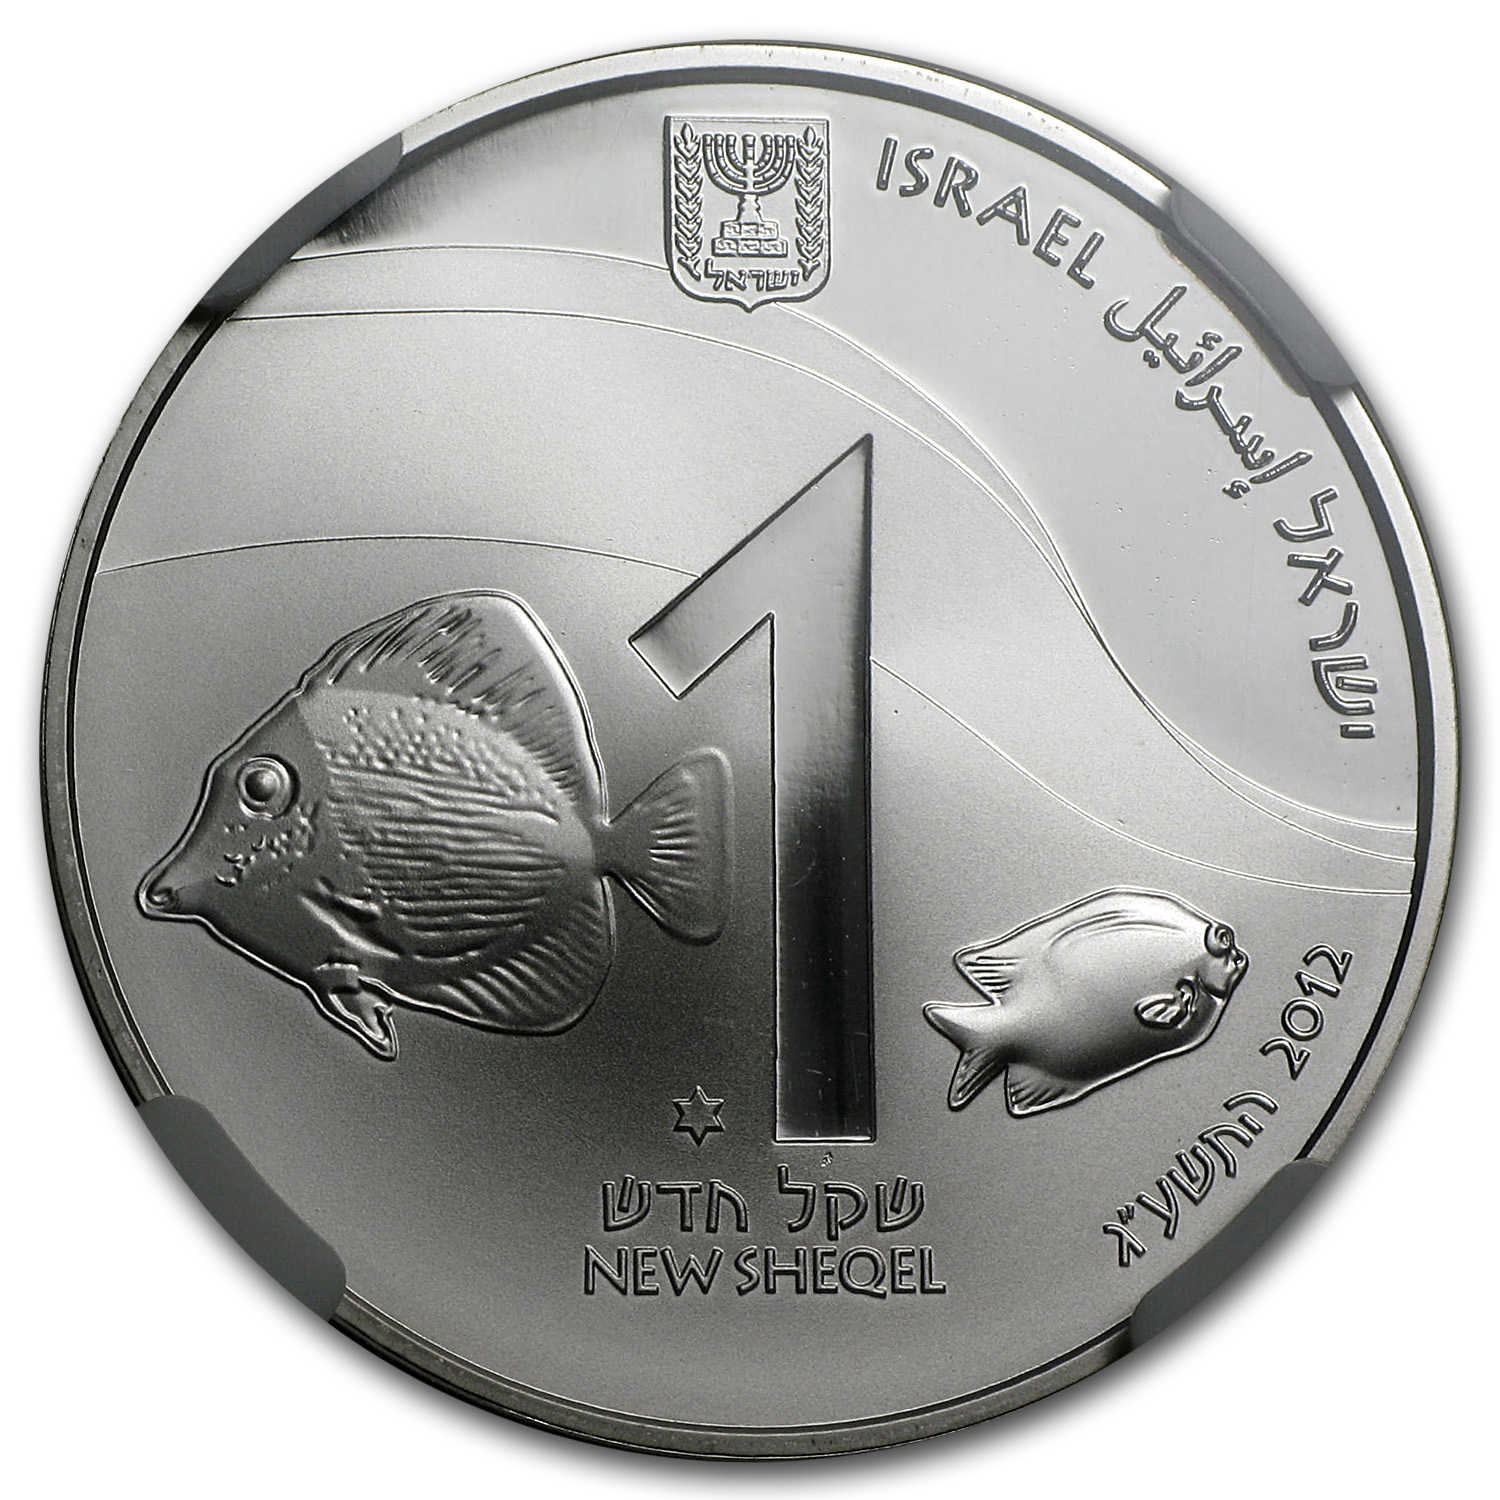 2012 Israel Coral Reef, Eilat Proof-Like 1 NIS Coin MS-70 NGC